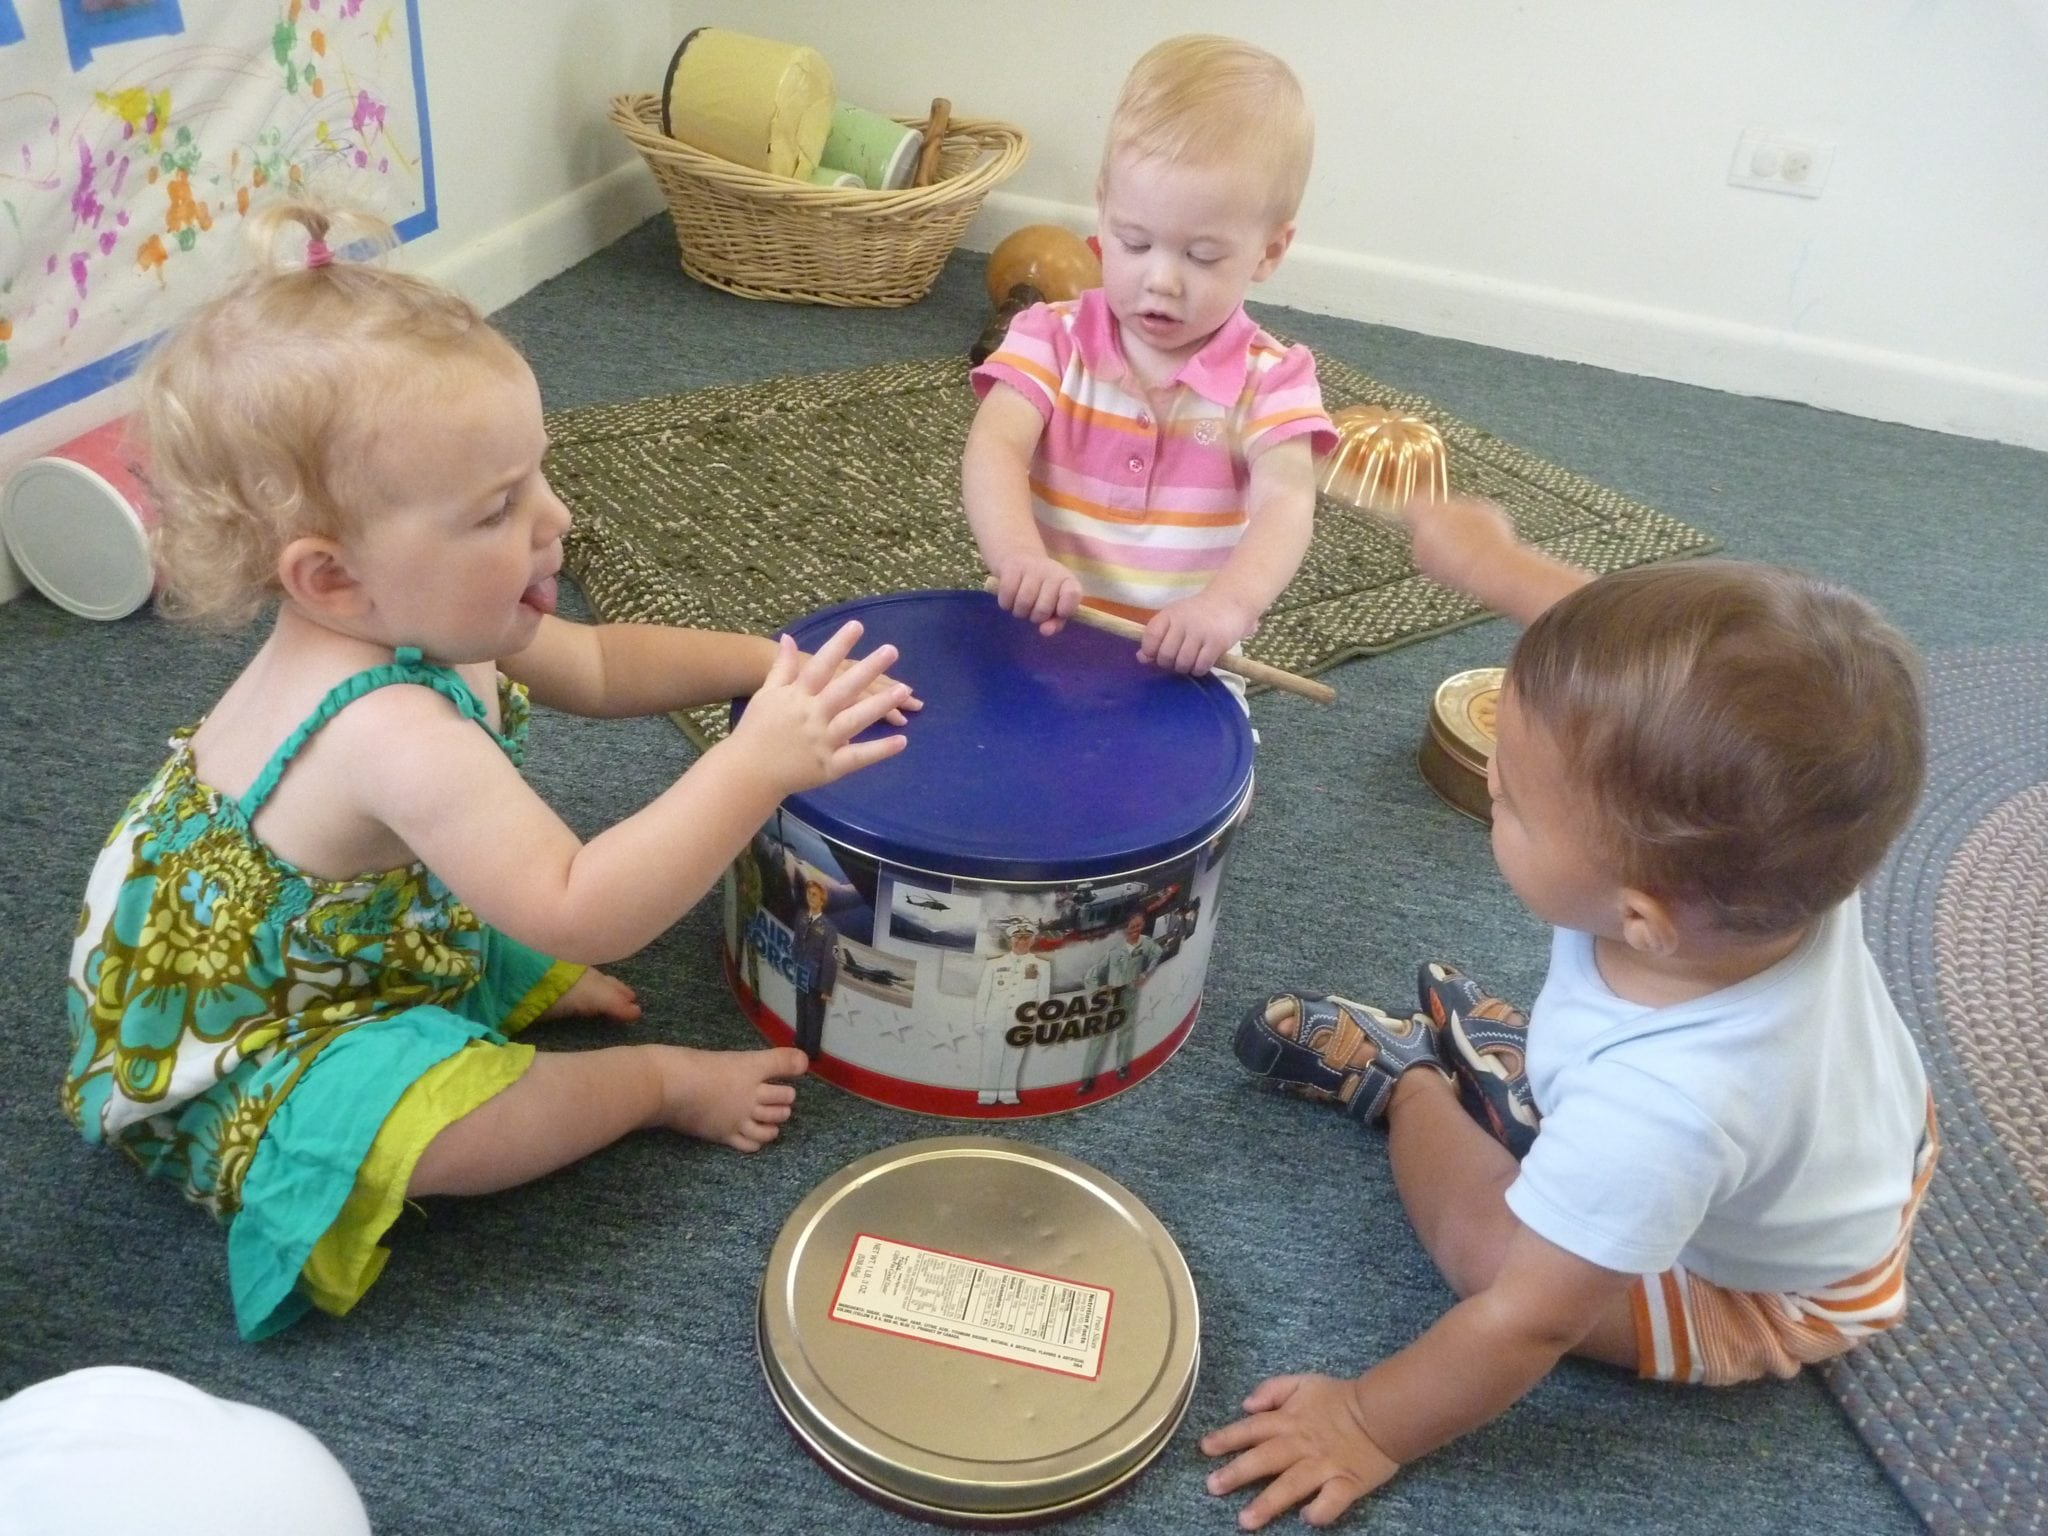 Our Neighborhood Babies banging on the drum